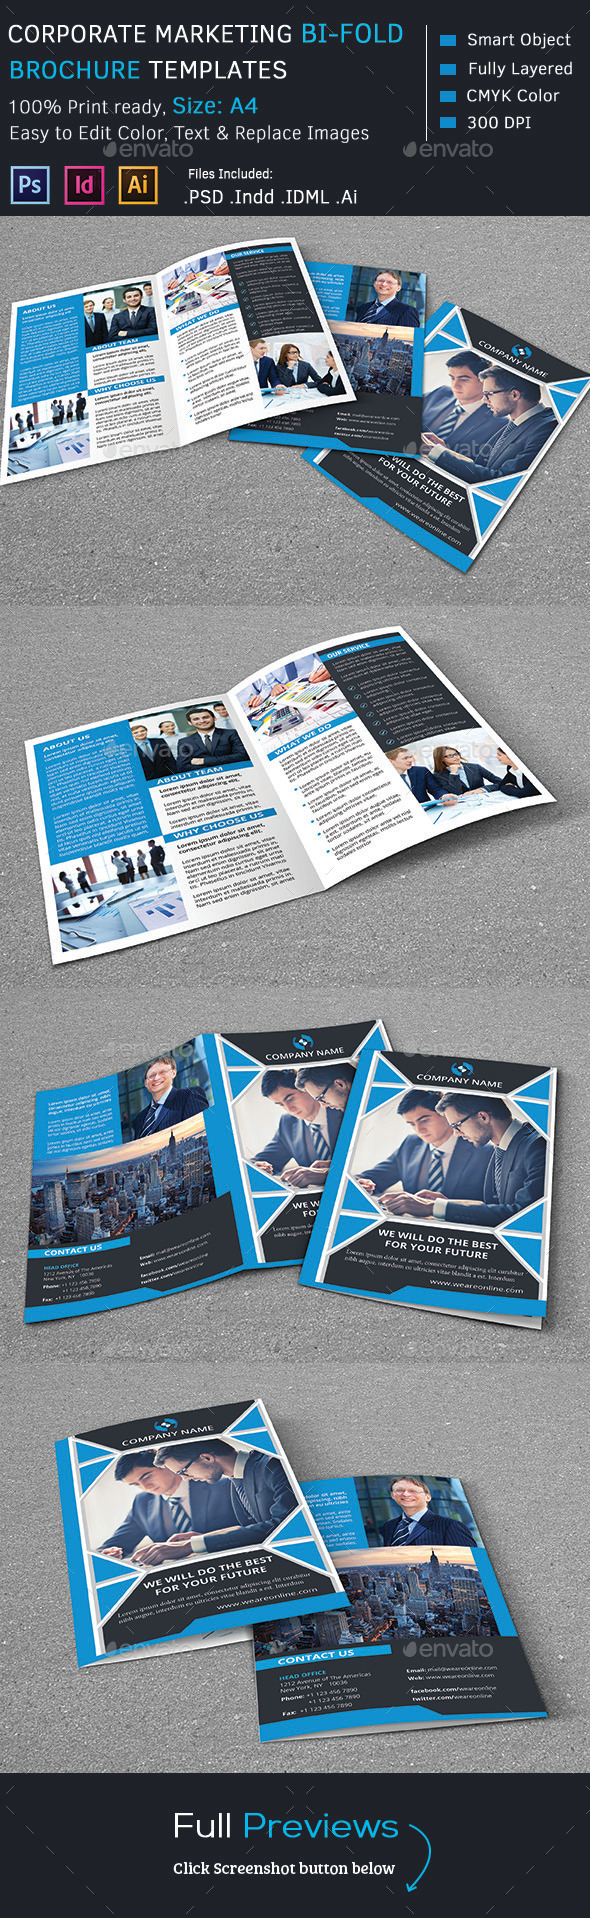 GraphicRiver Corporate Marketing Bi-Fold Brochure 9298986